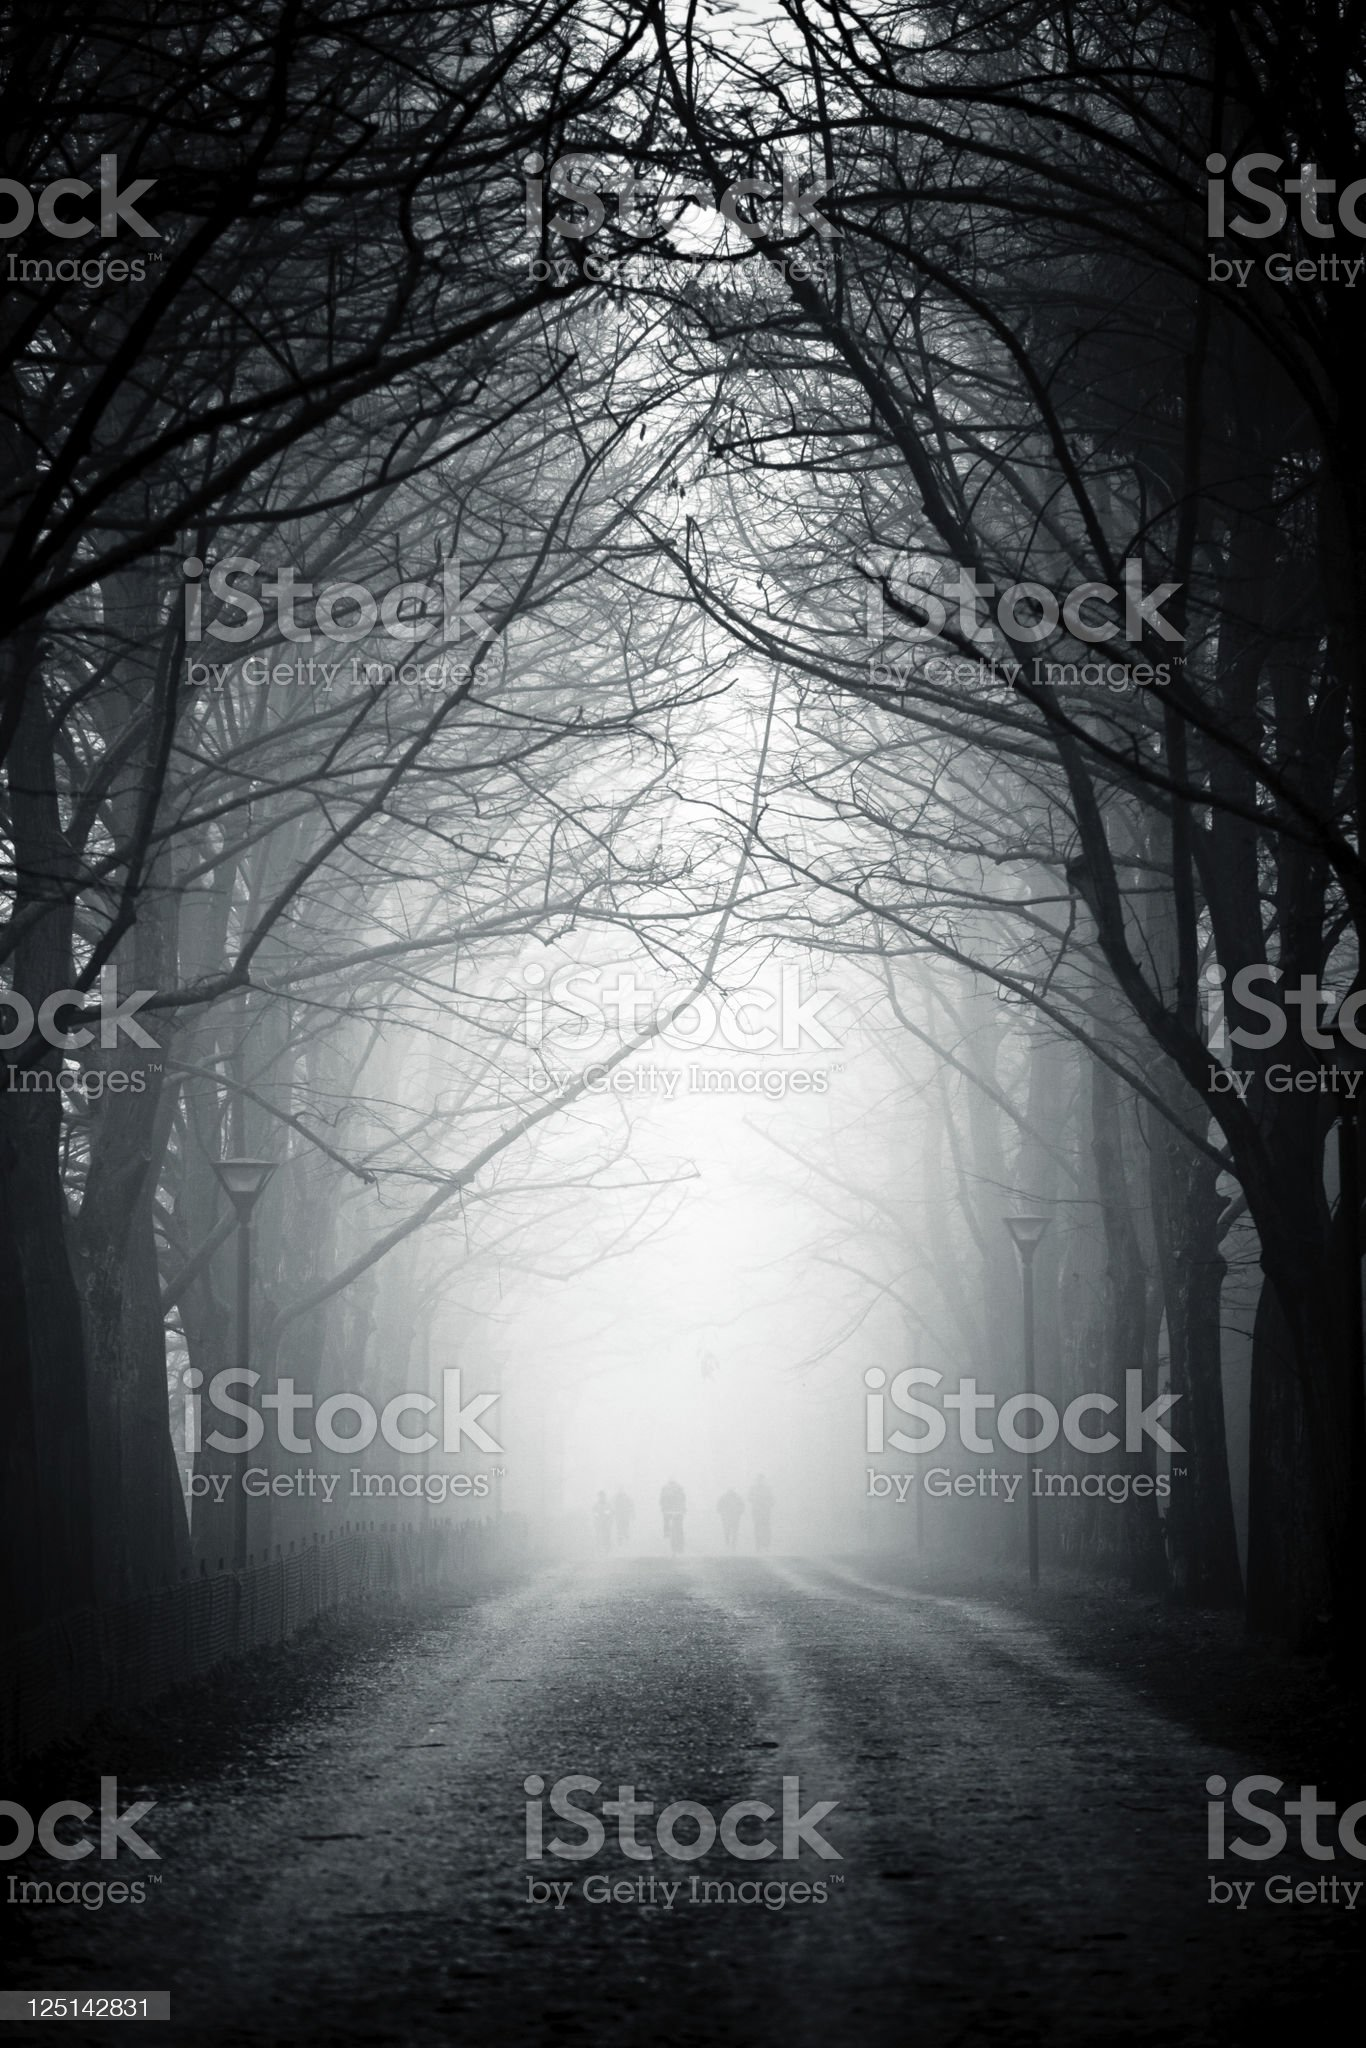 Country Road Tree Canopy in the Fog, Nobody royalty-free stock photo